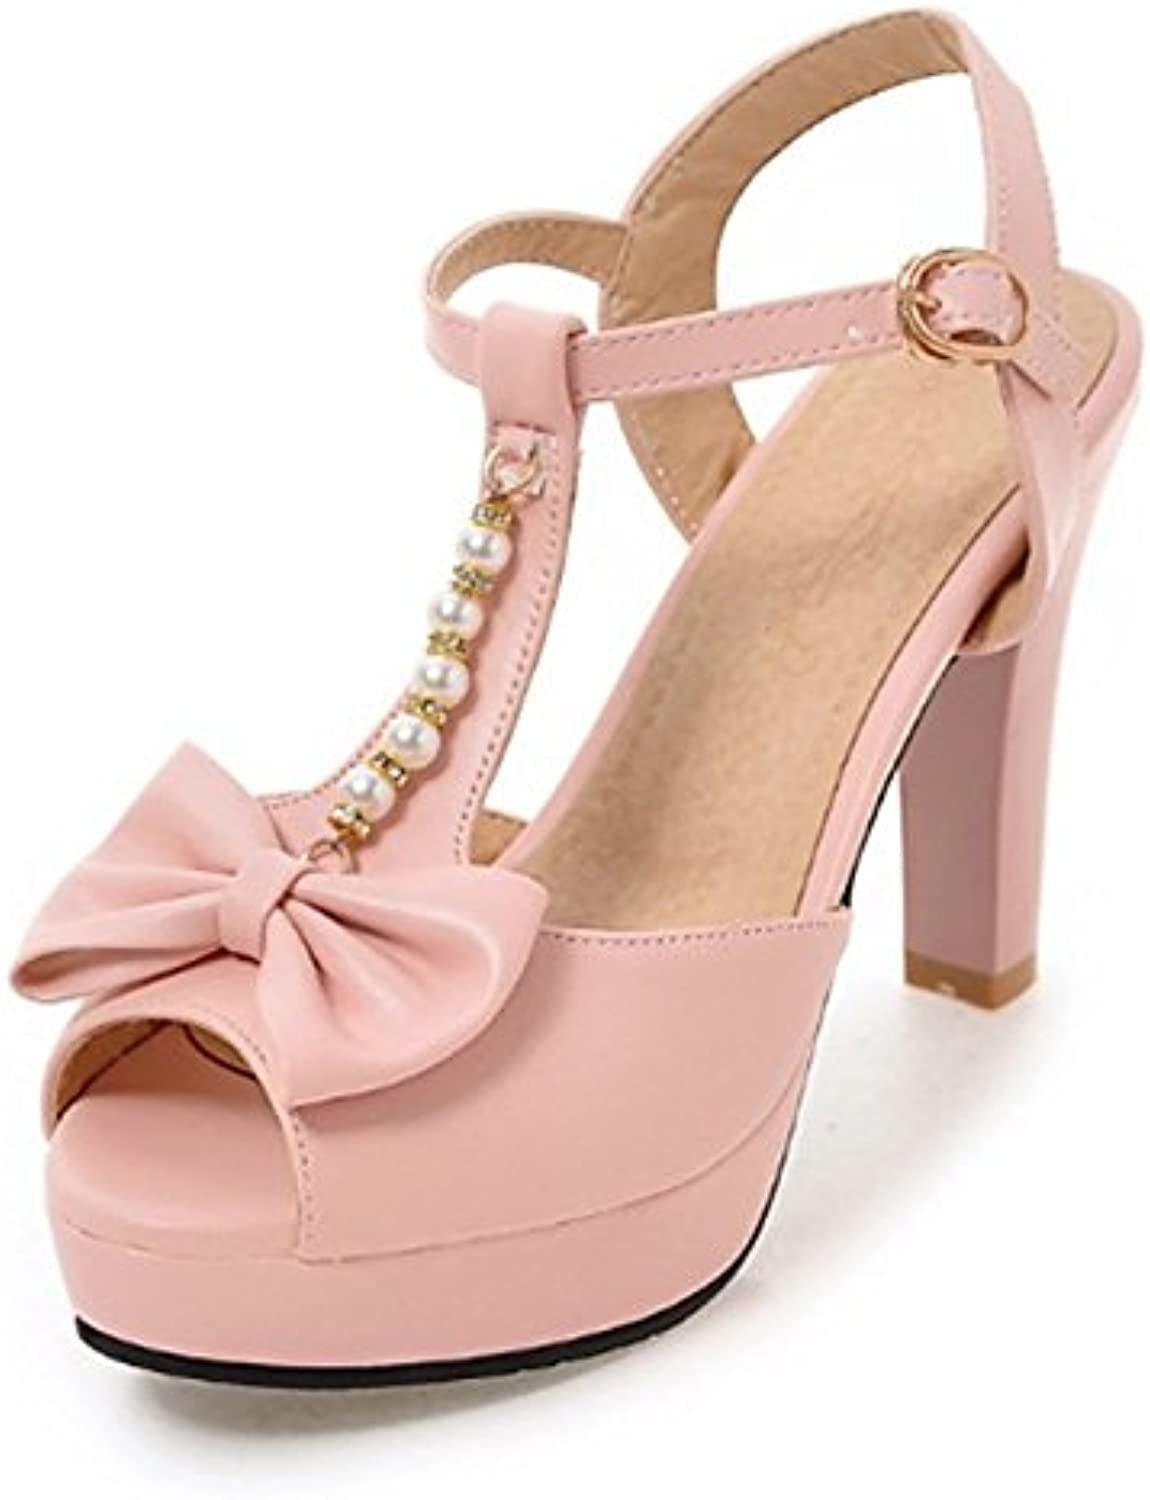 Women's shoes PU Spring Summer Novelty Comfort Sandals Stiletto Heel Peep Toe Bowknot Rivet Buckle for Office,Career Party,Evening